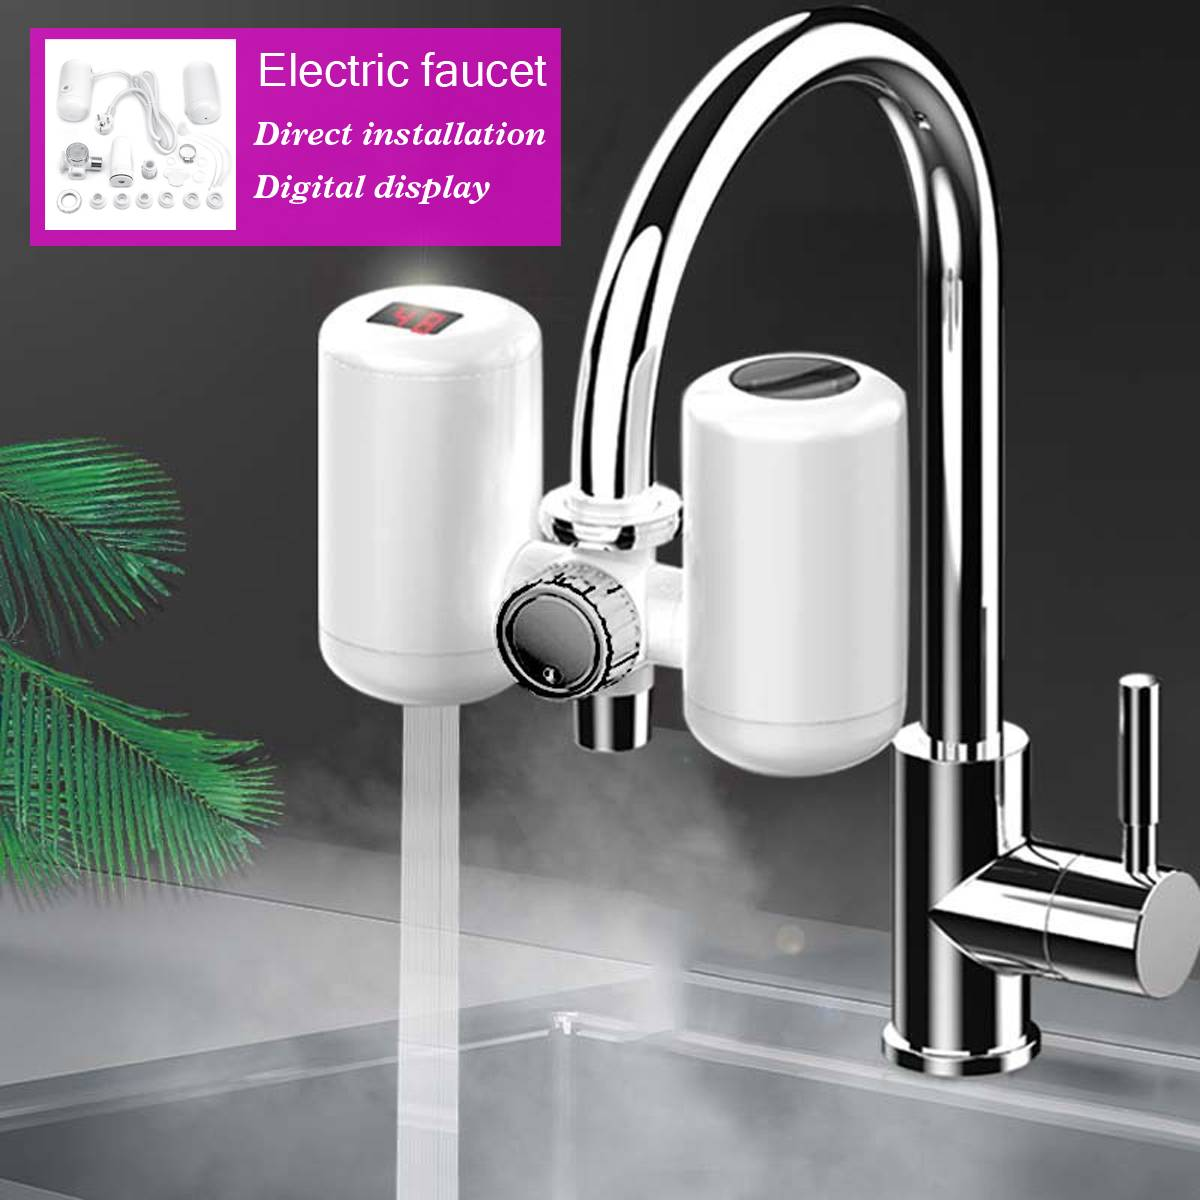 3KW 220V Electric Instant Hot Water Heater Sink Faucet Kitchen Heating Tap Free Installation Temperature Display Electric Faucet3KW 220V Electric Instant Hot Water Heater Sink Faucet Kitchen Heating Tap Free Installation Temperature Display Electric Faucet